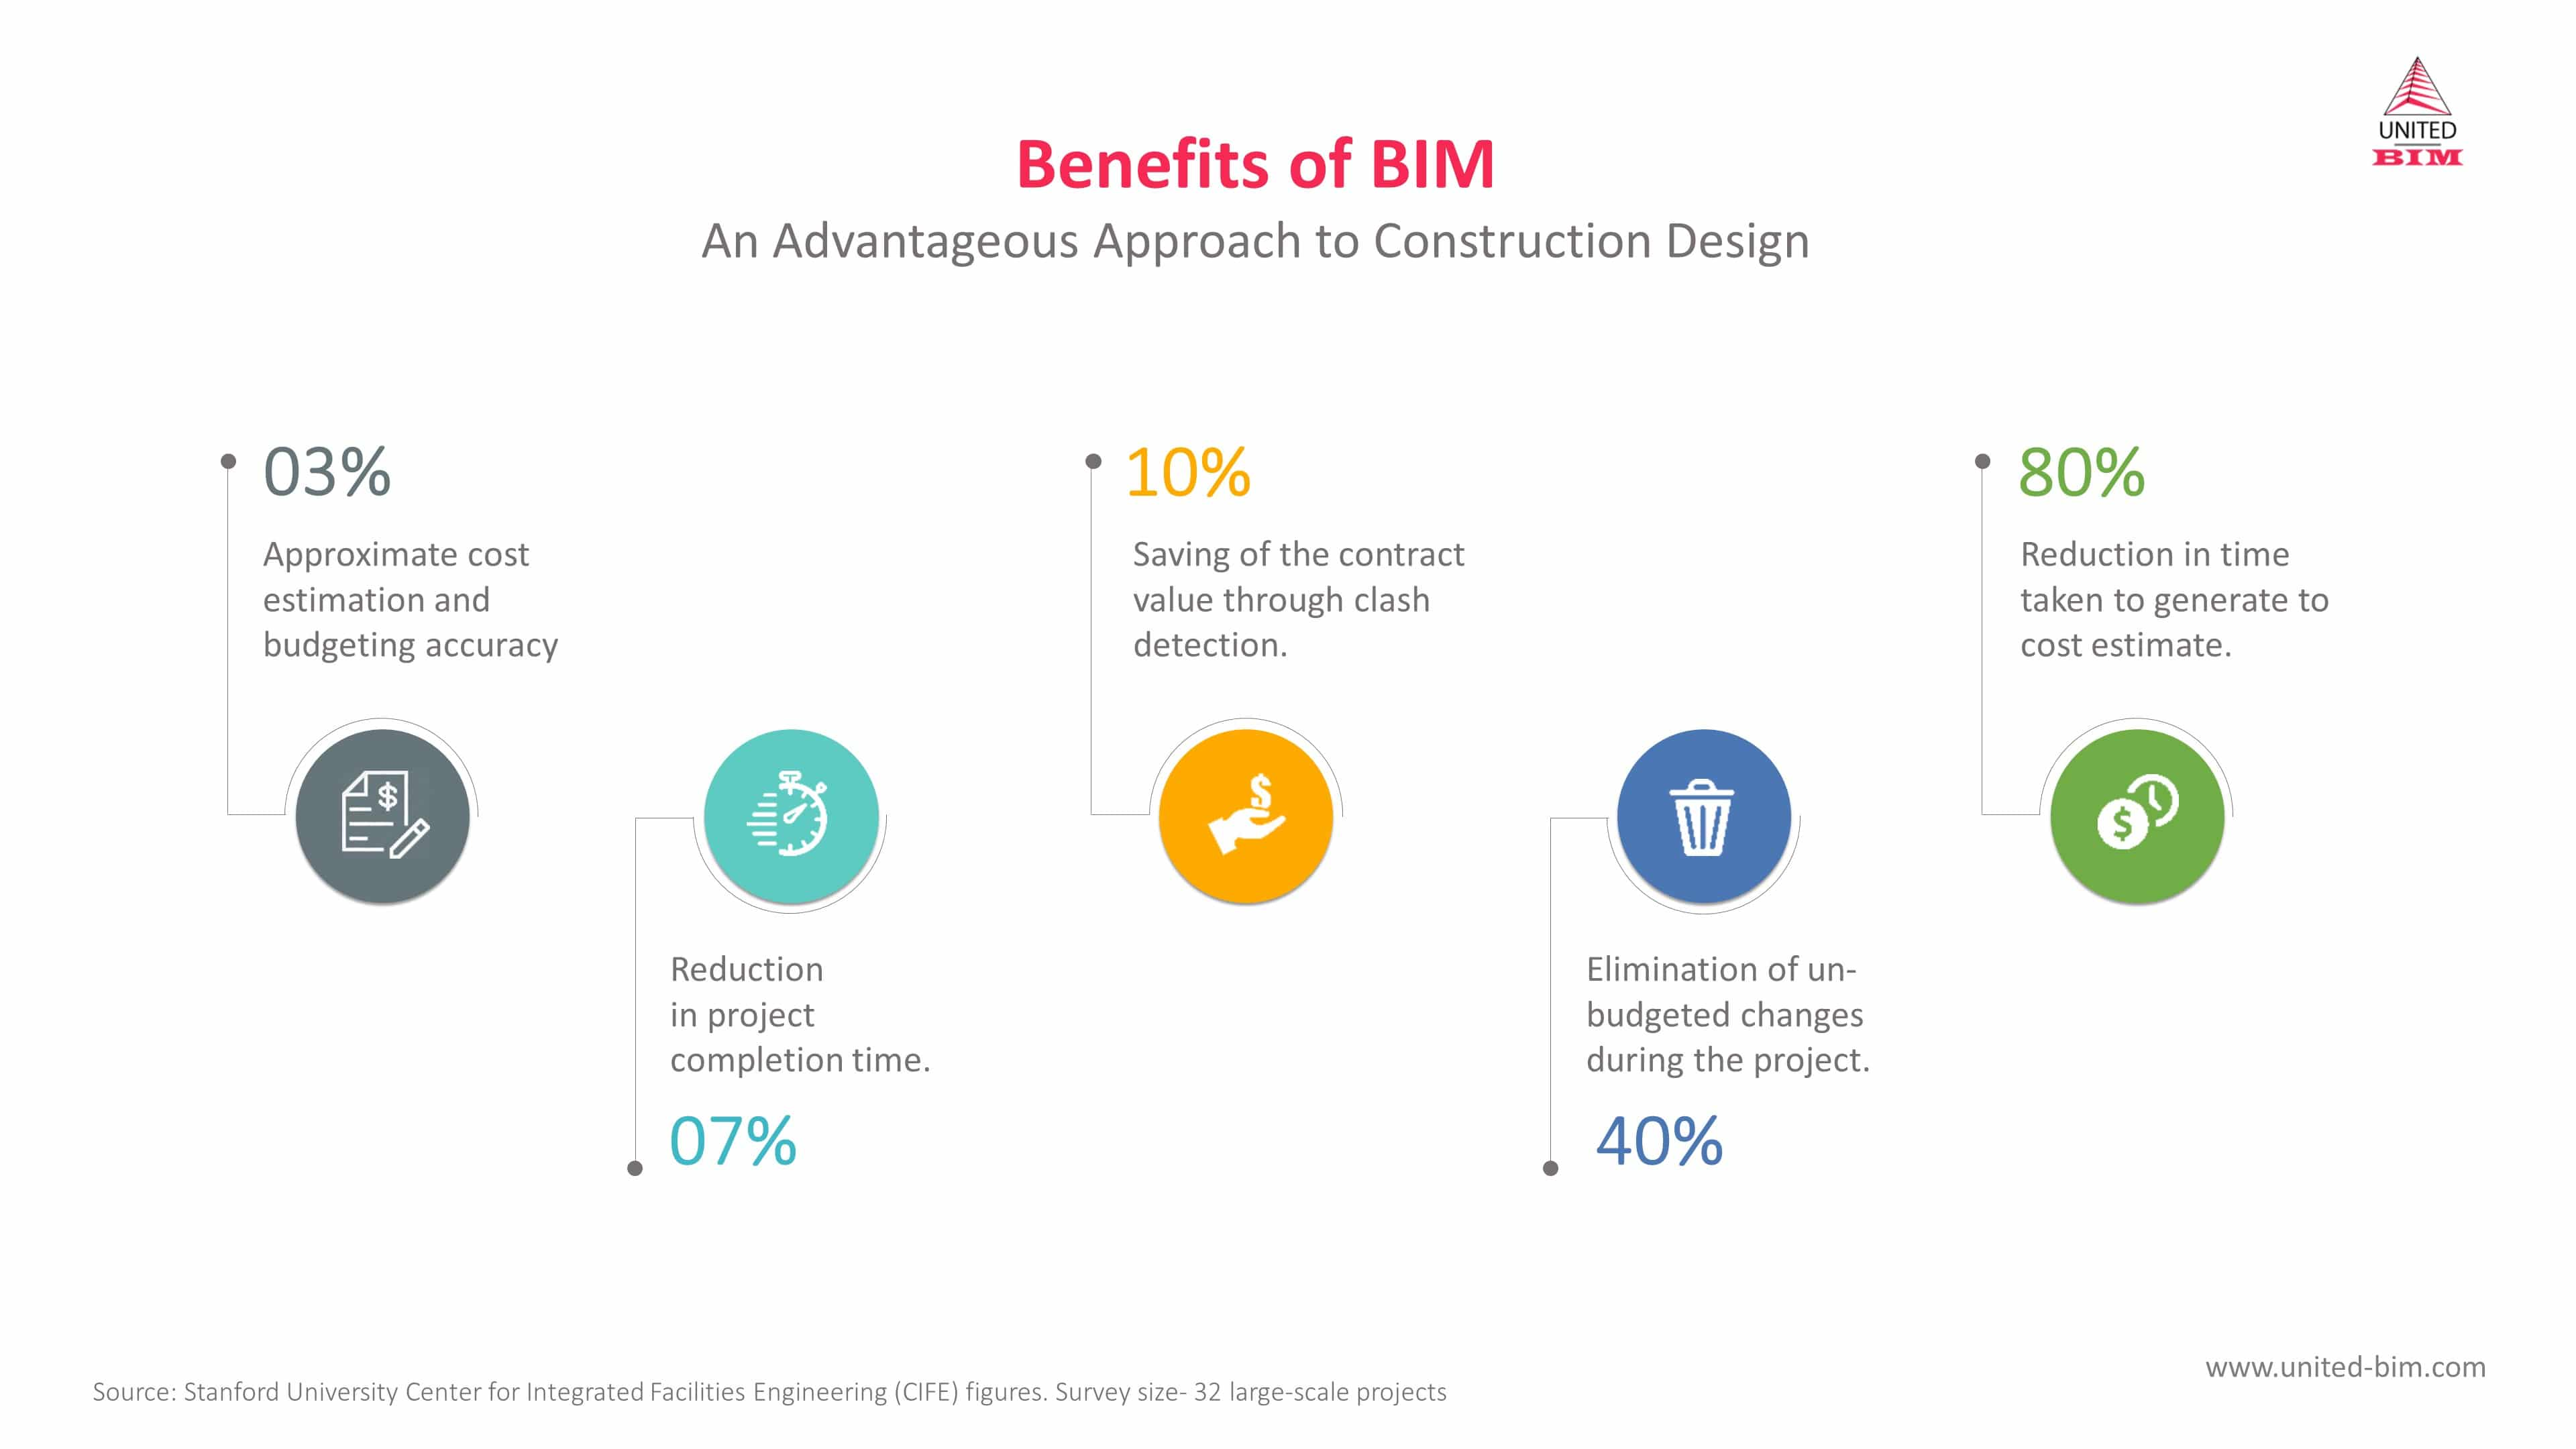 Benefits of BIM_Advantageous Approach to Construction Design_United-BIM_